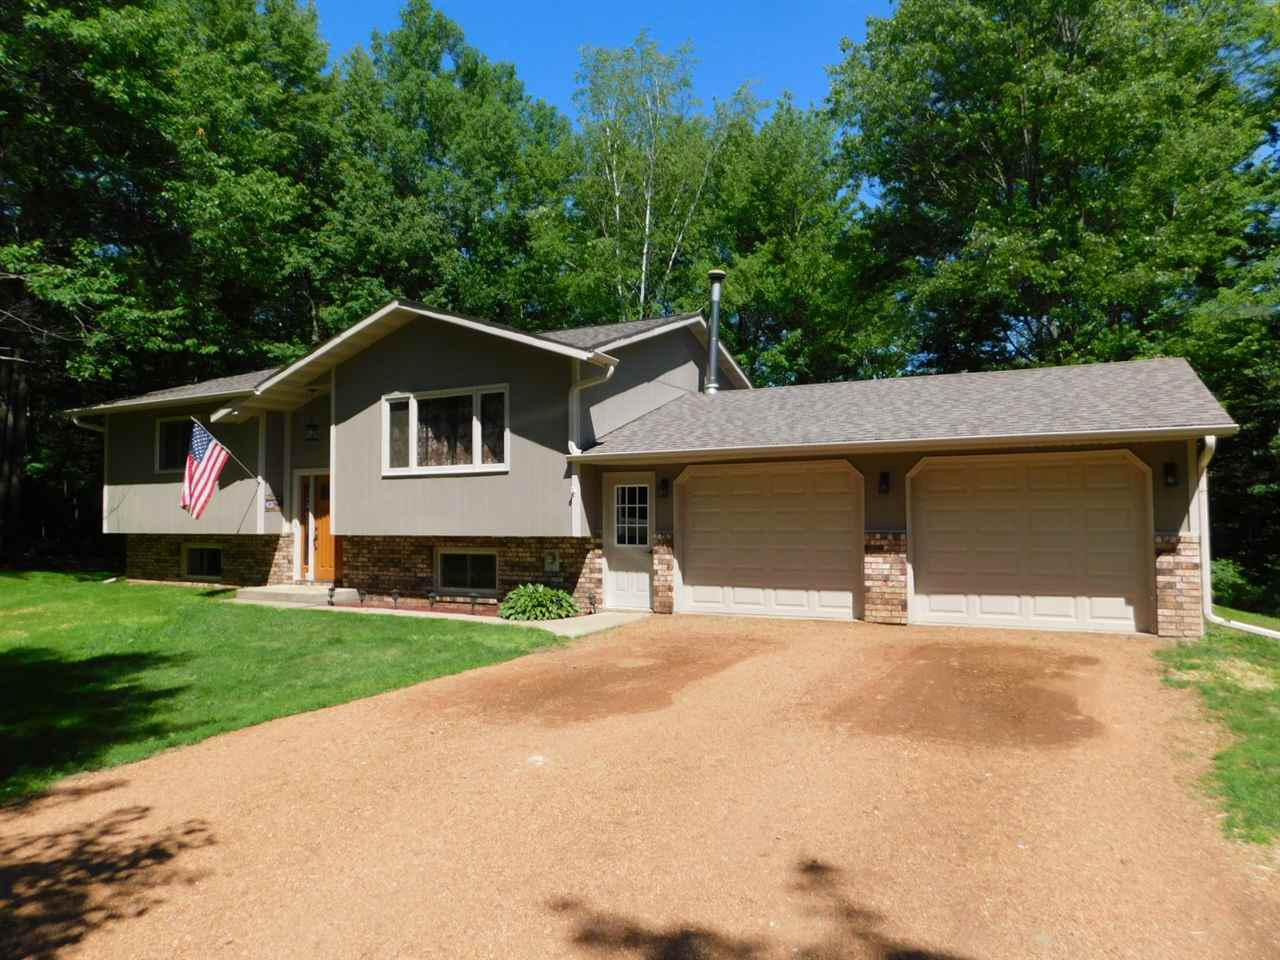 Awesome kitchen with brand new quartz counter top, tons of cabinetry, open to dining and patio doors to back yard deck. This spotless country home on 36 acres, is located just minutes north of Merrill. The Main floor offers kitchen, dining, and living, along with pretty tiled bath, with jetted tub, and master bedroom with huge walk in closet. Lower level has 2 more bedrooms, second bath, family room, and walk out to the back yard. The laundry has nice cabinetry and very comfortable. 2 car garage.,Outside you will find a small storage and 36.71 acres. Wooded around the home, with room to hunt right at home, with about 7 acres of field for some gardening, or rent out to the local farmer.